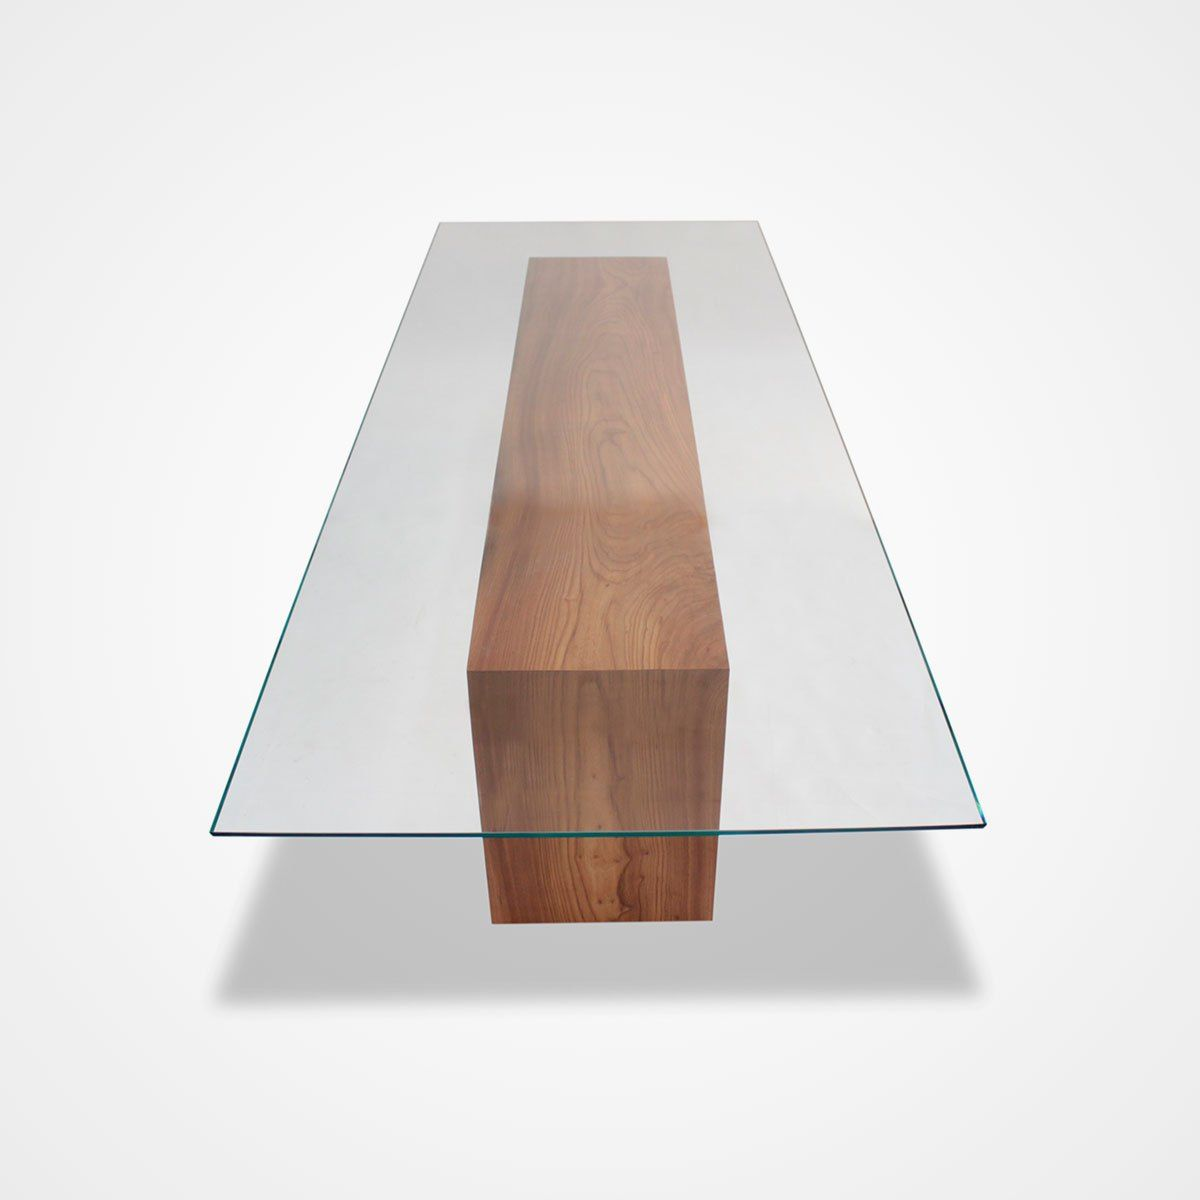 Glass Topped Solid Wood Dining Table Rotsen Furniture Contemporary Dining Table Wood Dining Table Wood Coffee Table Design